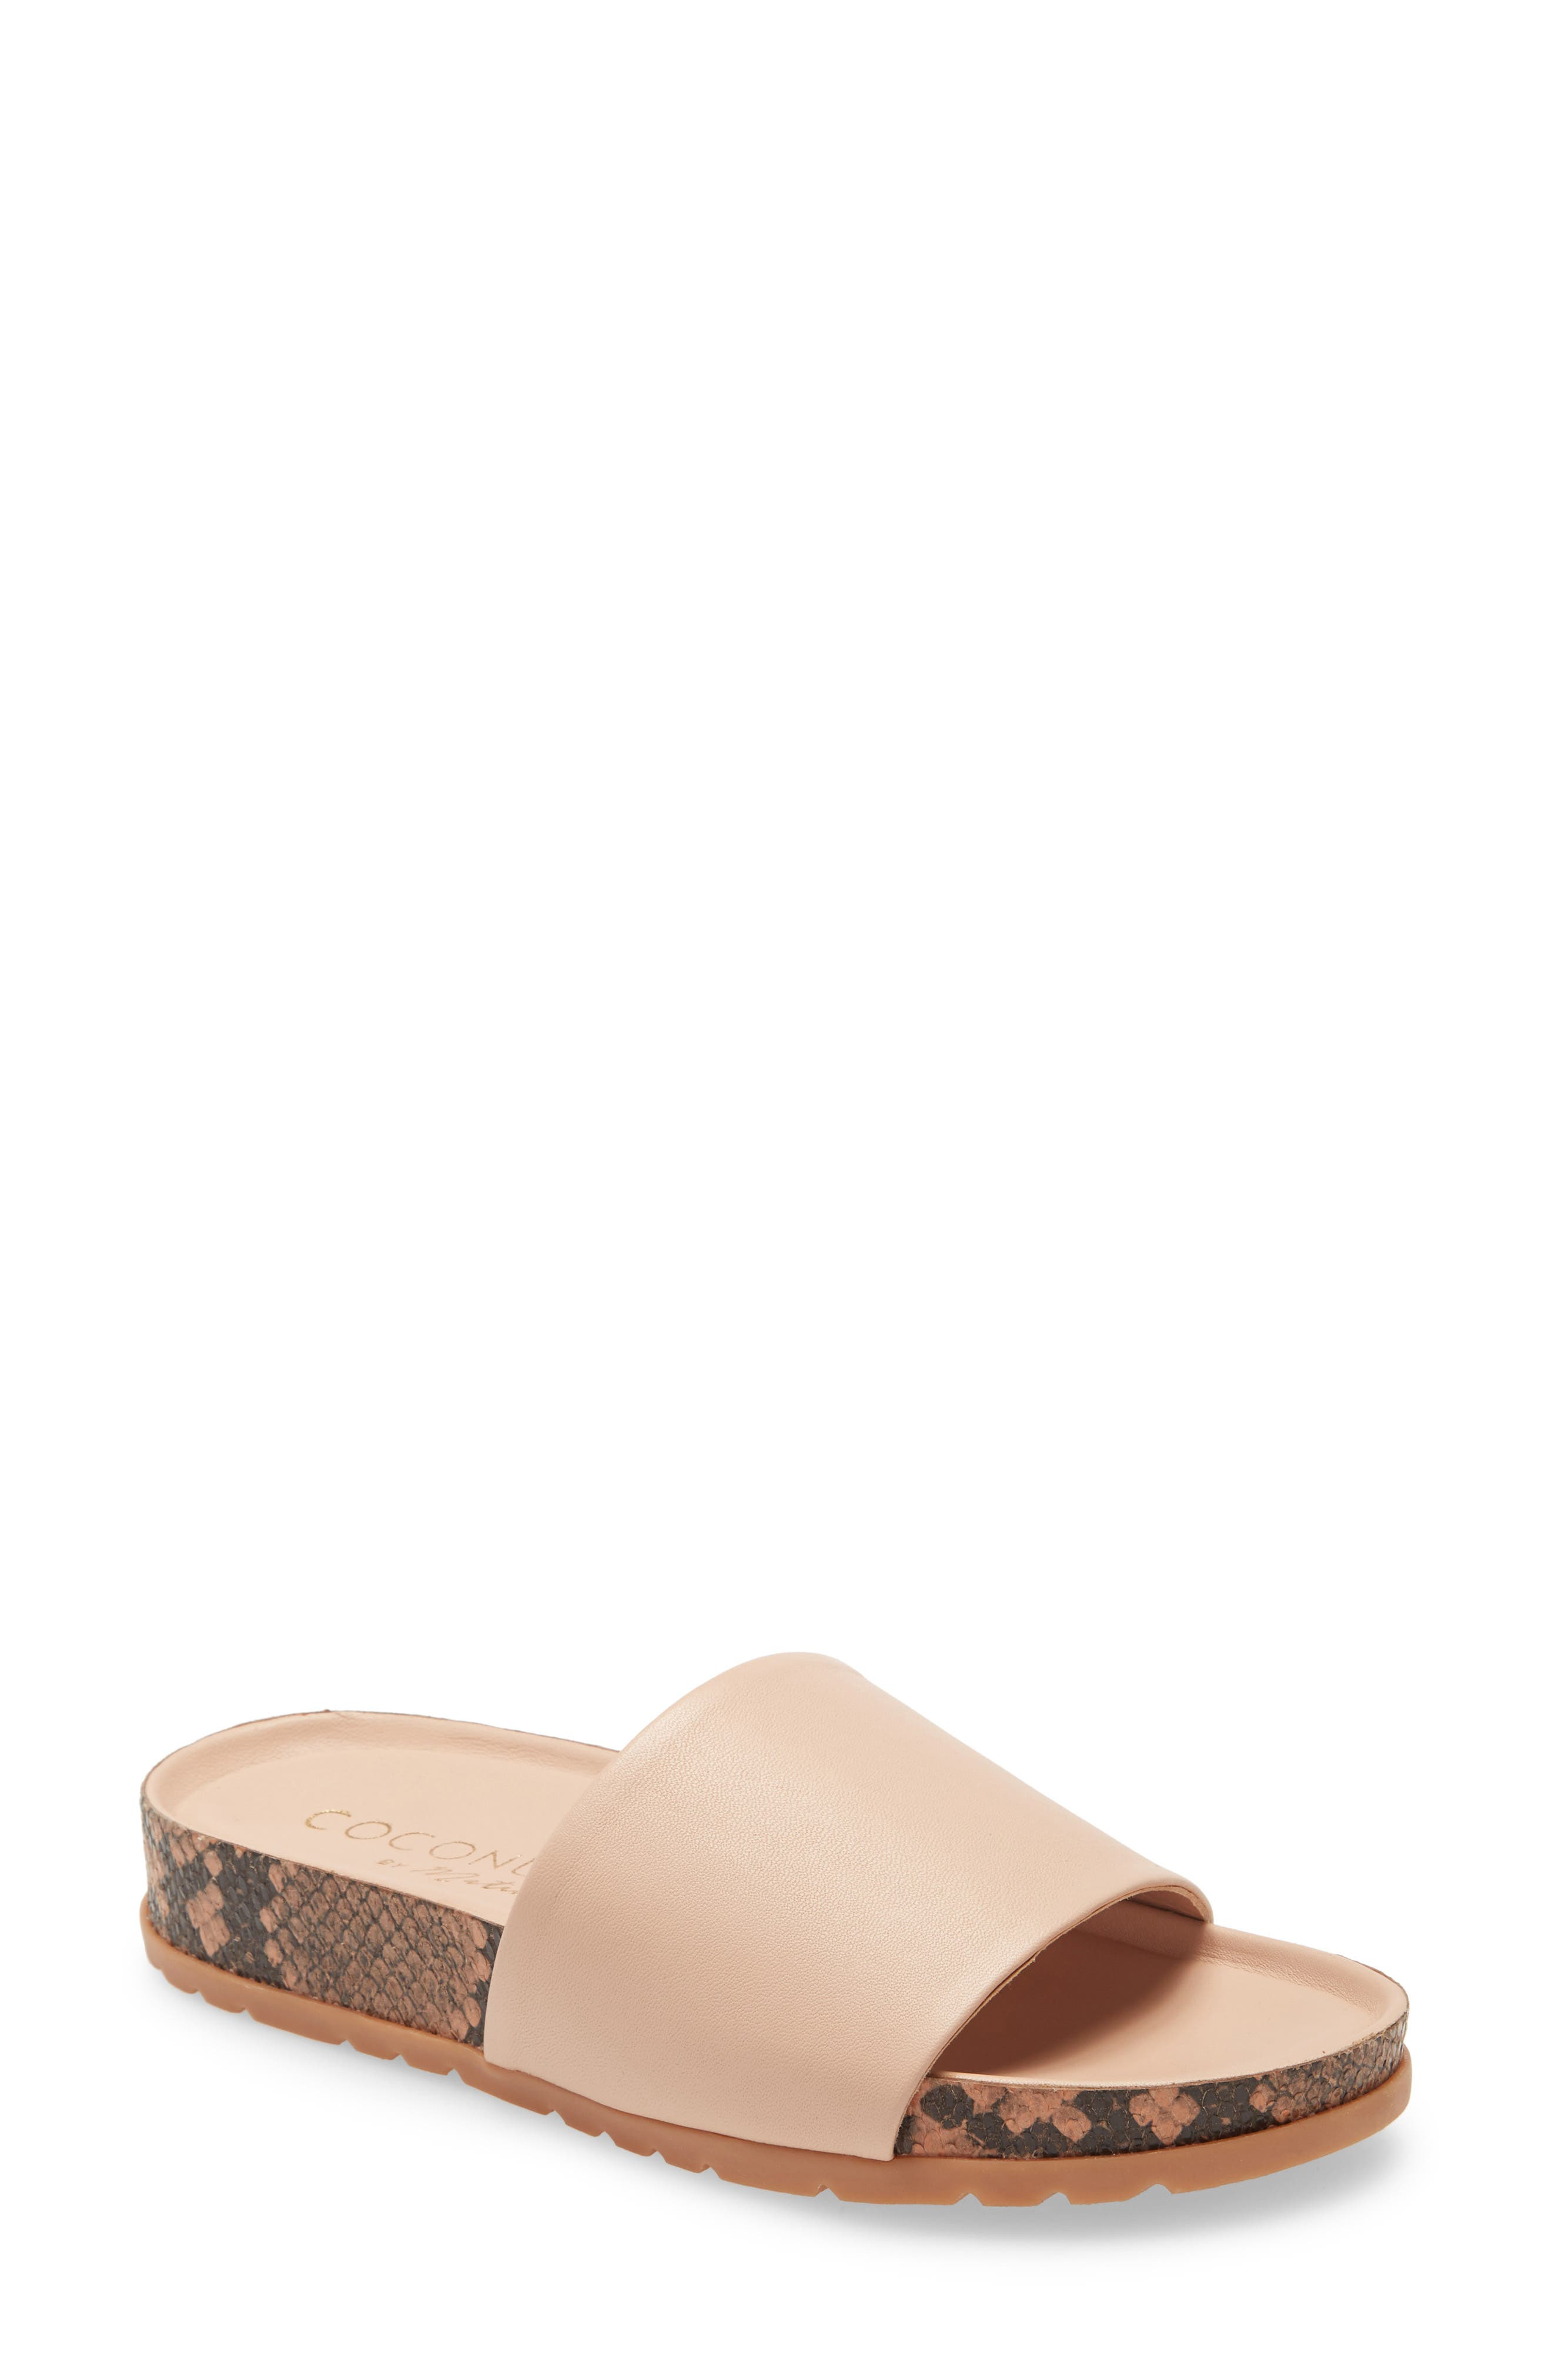 A slightly wild sole stamps a graceful slide sandal with a bit of edge. Style Name: Coconuts By Matisse Shift Slide Sandal (Women). Style Number: 5987484. Available in stores.